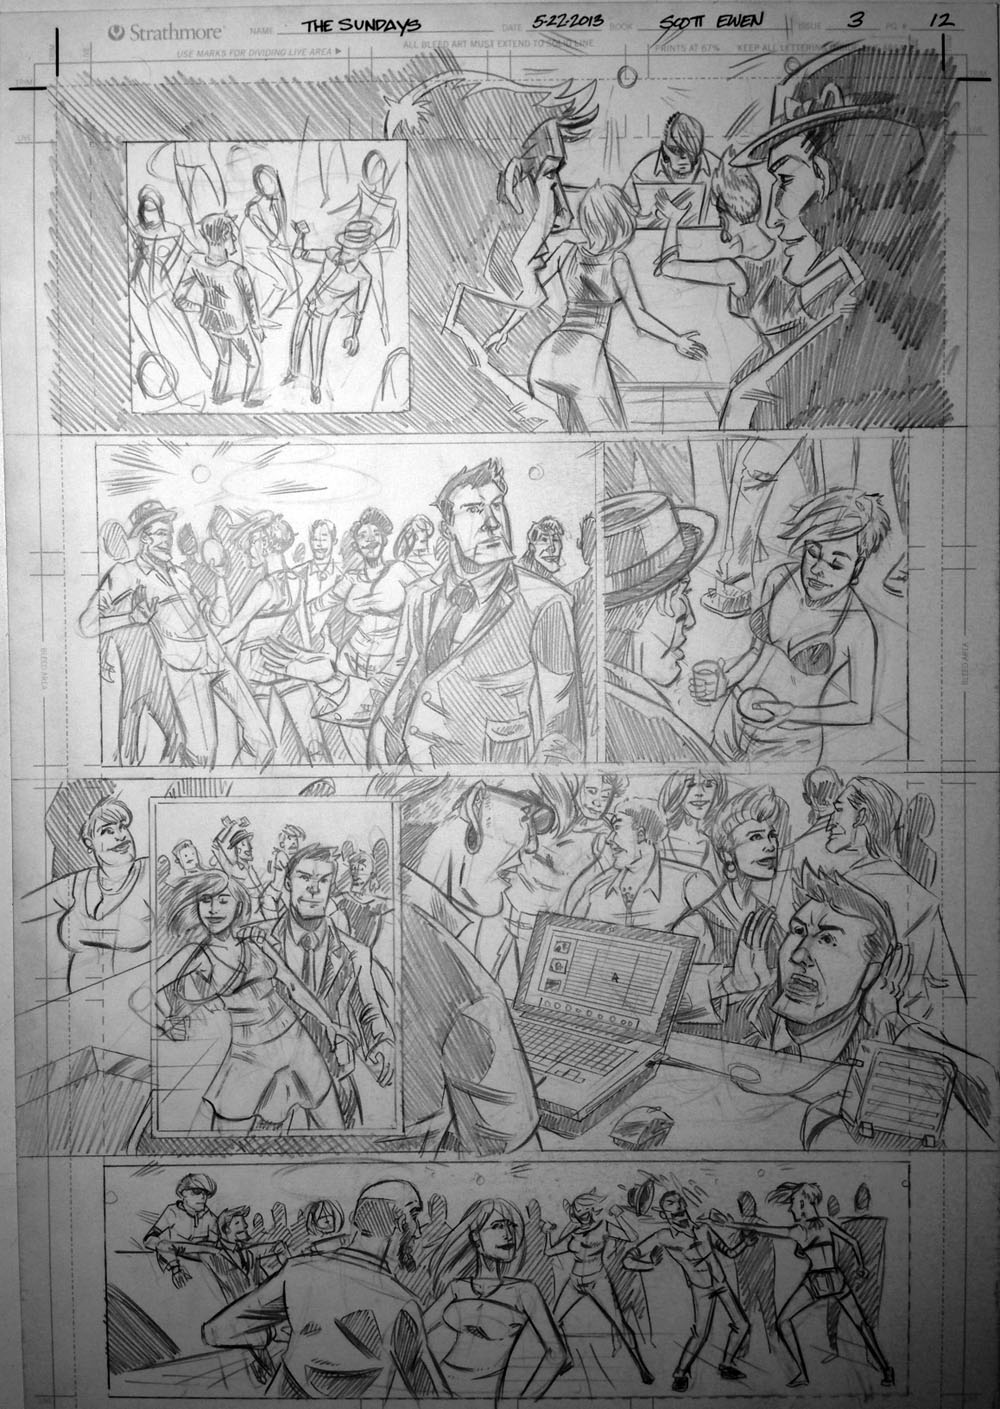 the_sundays__3_page_12_pencils_by_scottewen-d668jsd.jpg